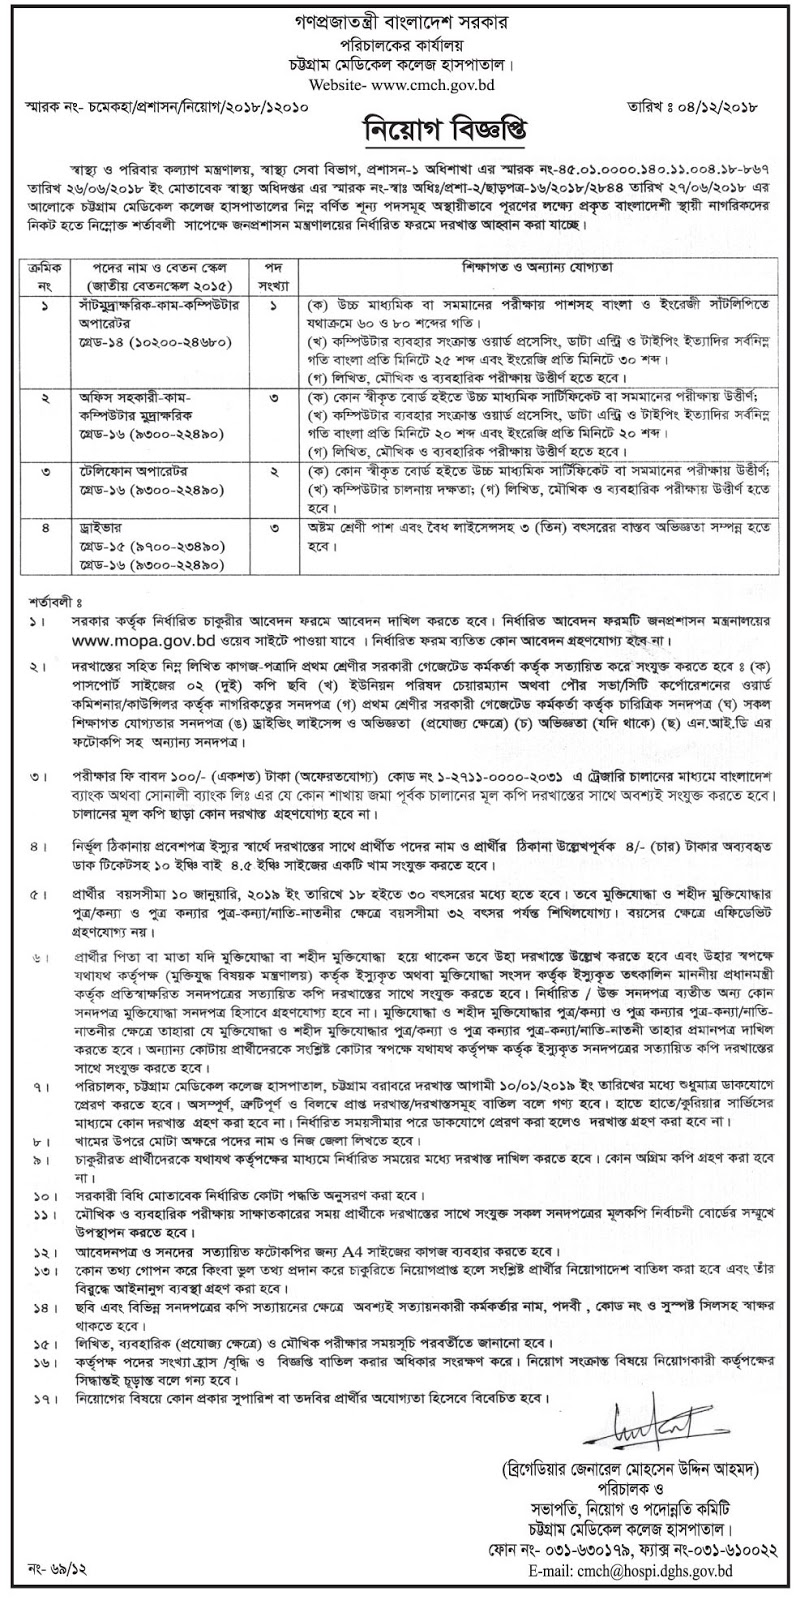 Chittagong Medical College Hospital (CMCH) Job Circular 2018 | www